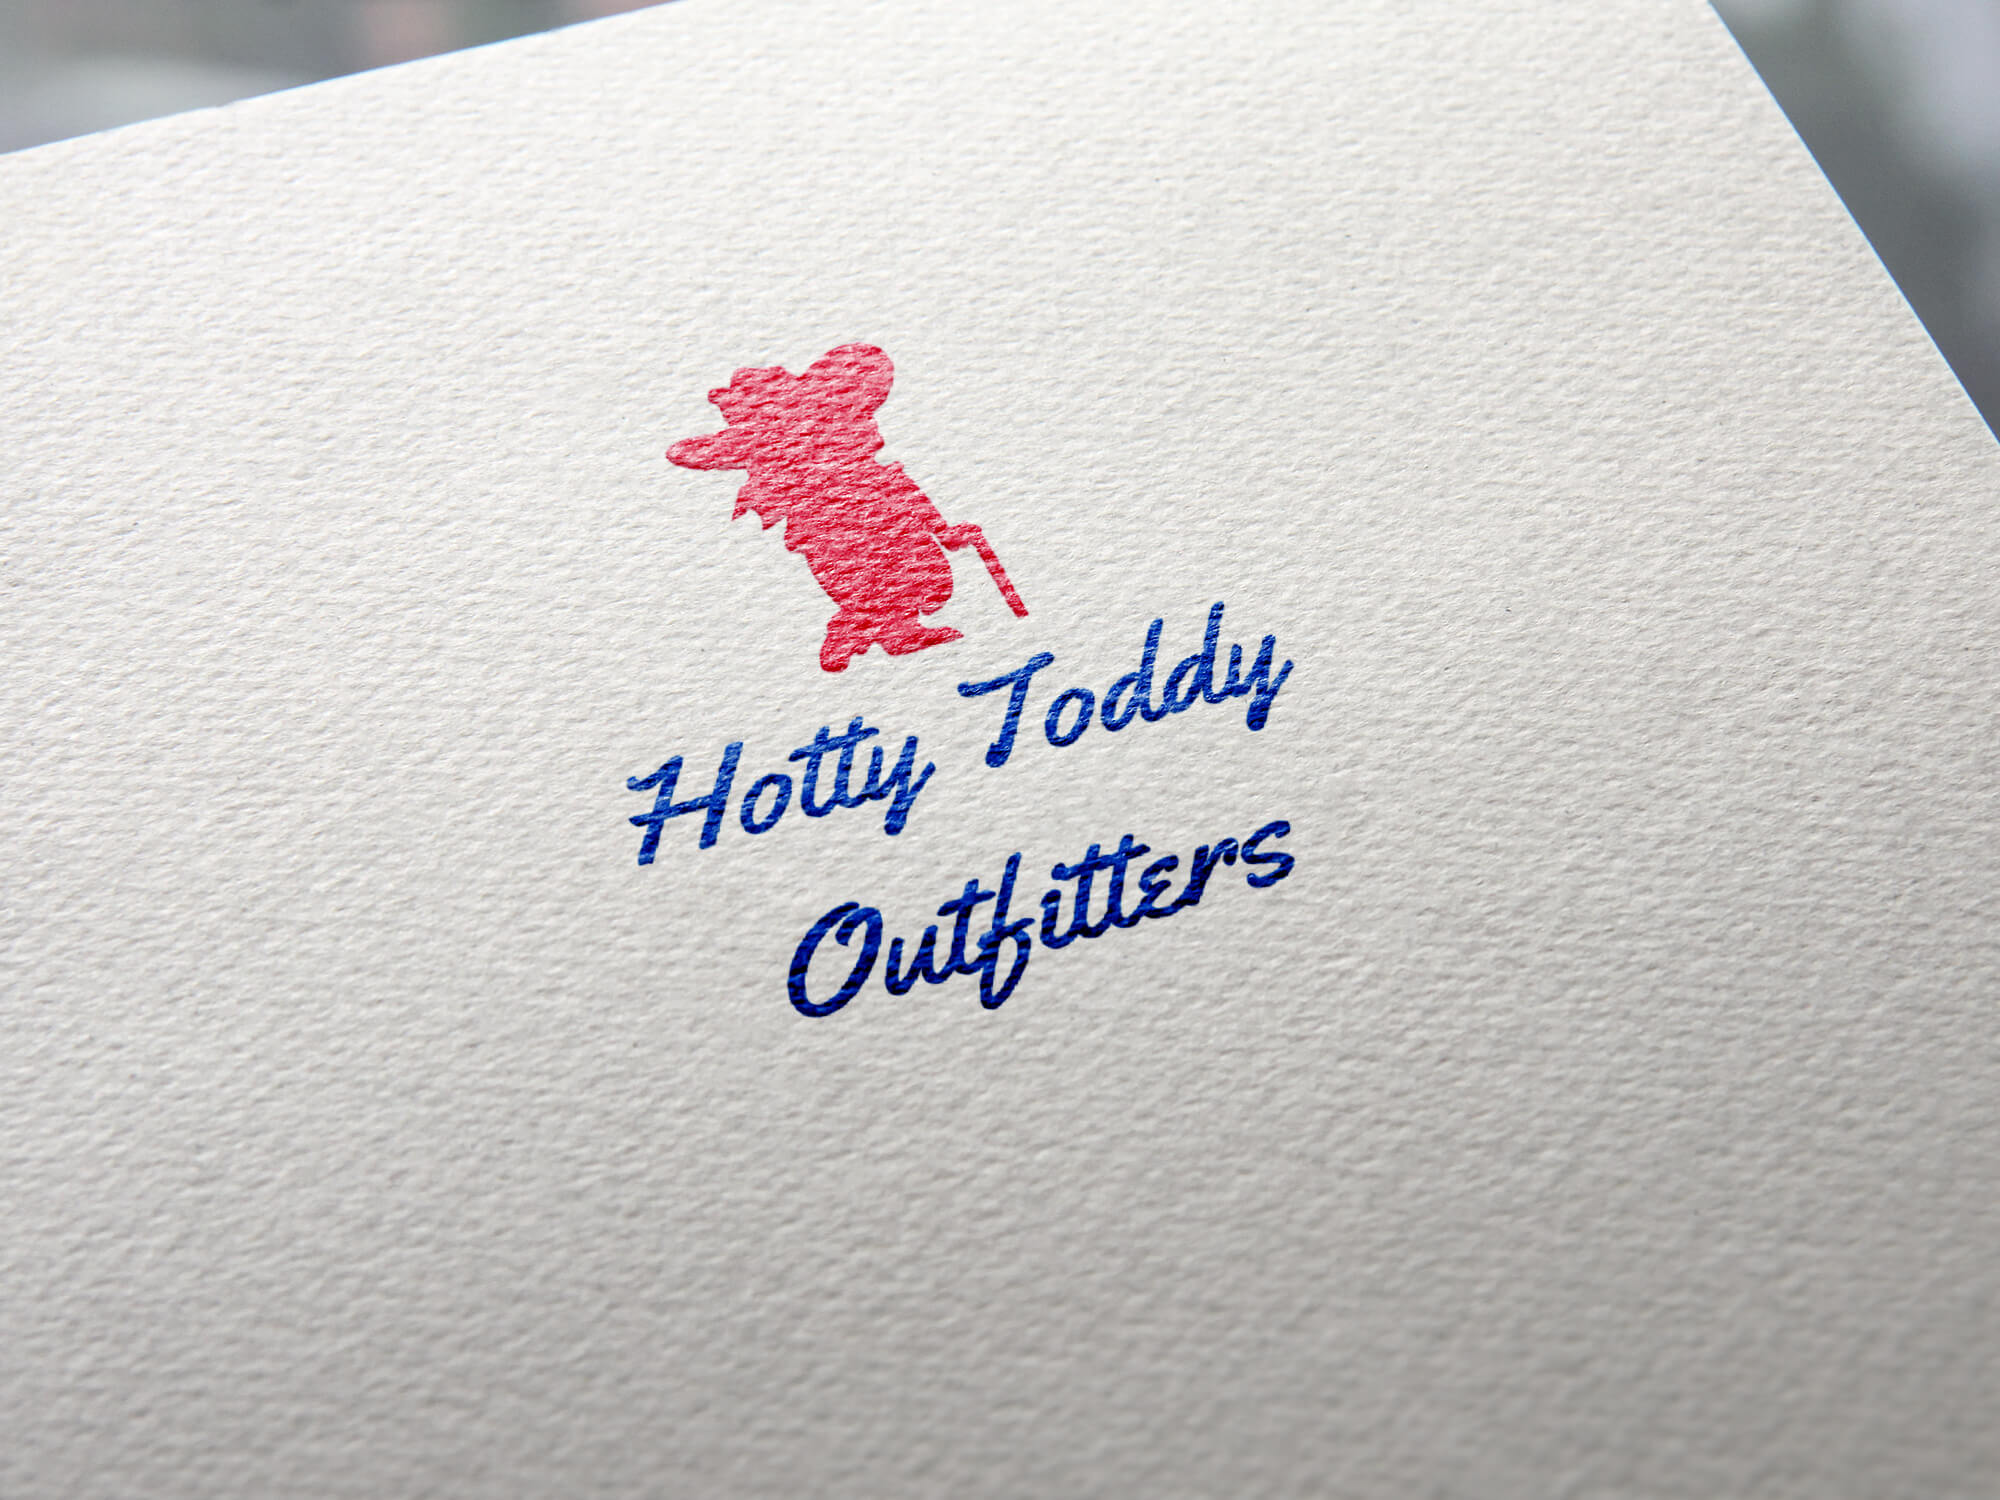 Mockup of Hotty Toddy Outfitters Logo